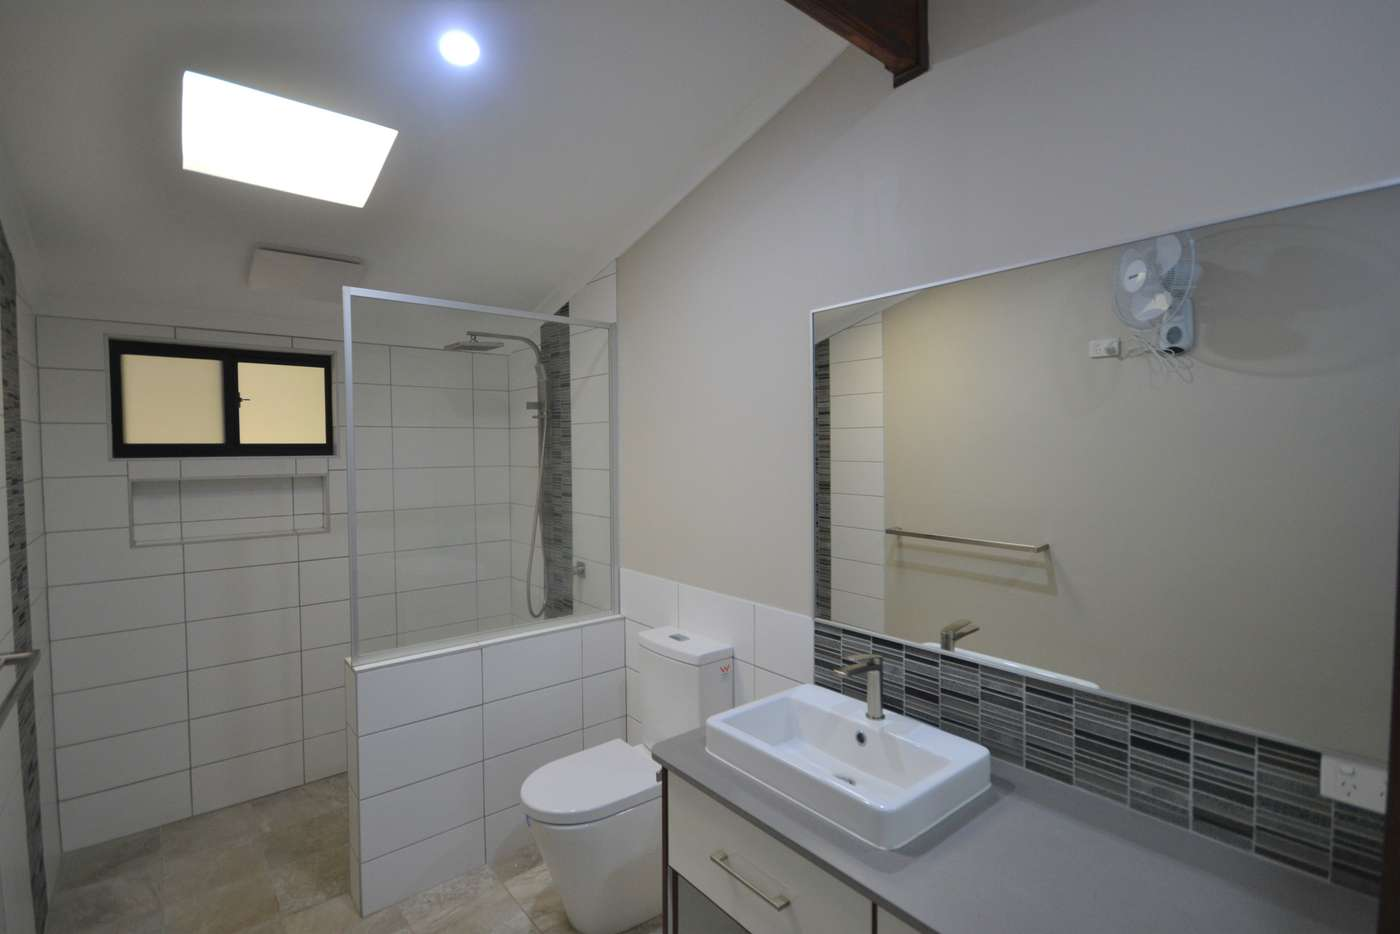 Seventh view of Homely house listing, 30 Saville Street, Broome WA 6725